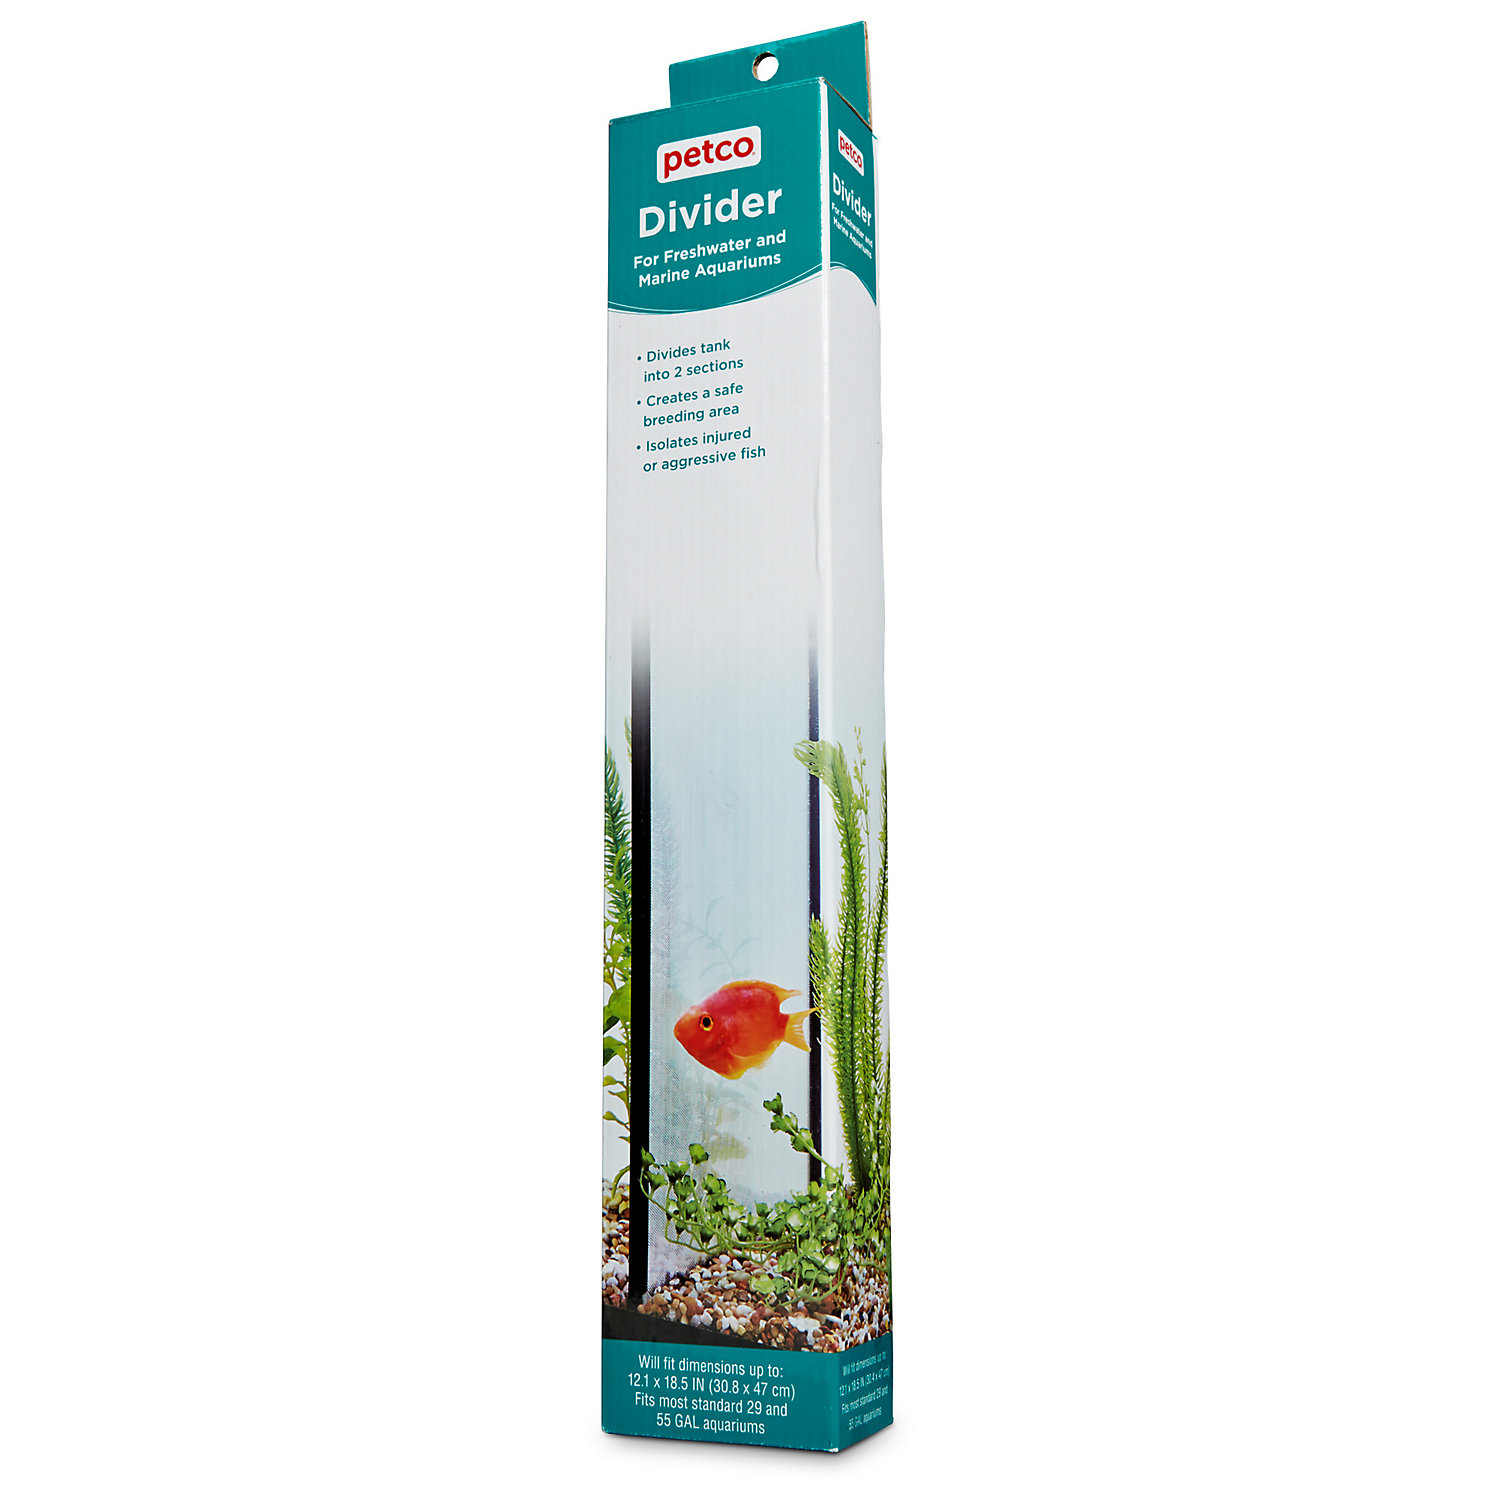 Lee 39 s aquarium and pet products upc barcode for Petco fish supplies